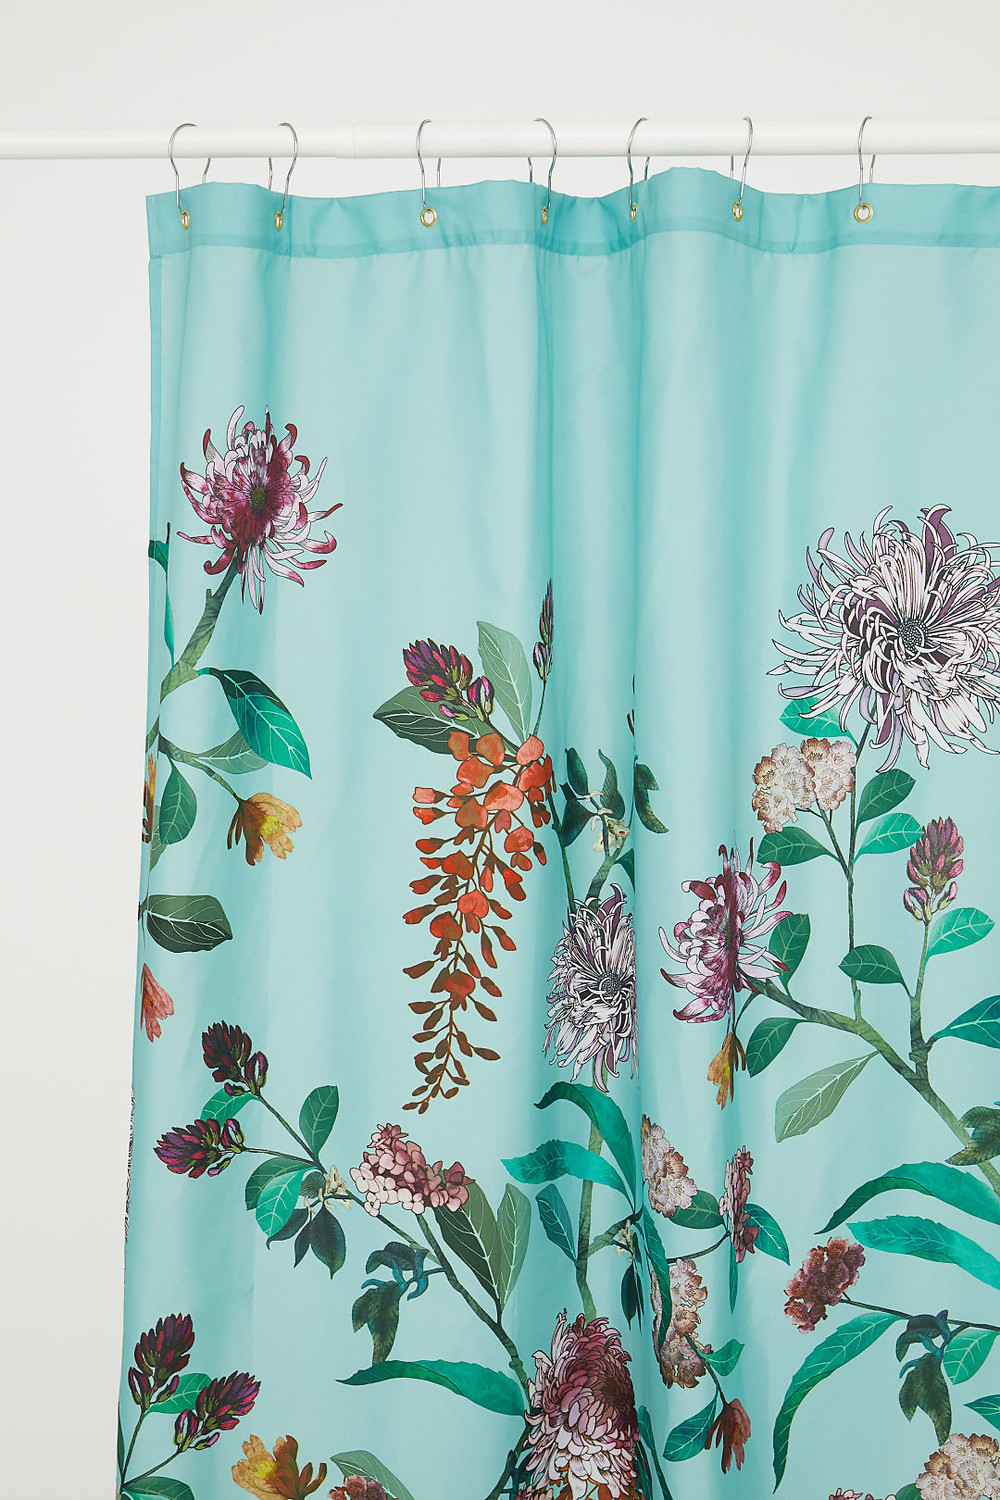 H&M Home Shower Curtain $29.99